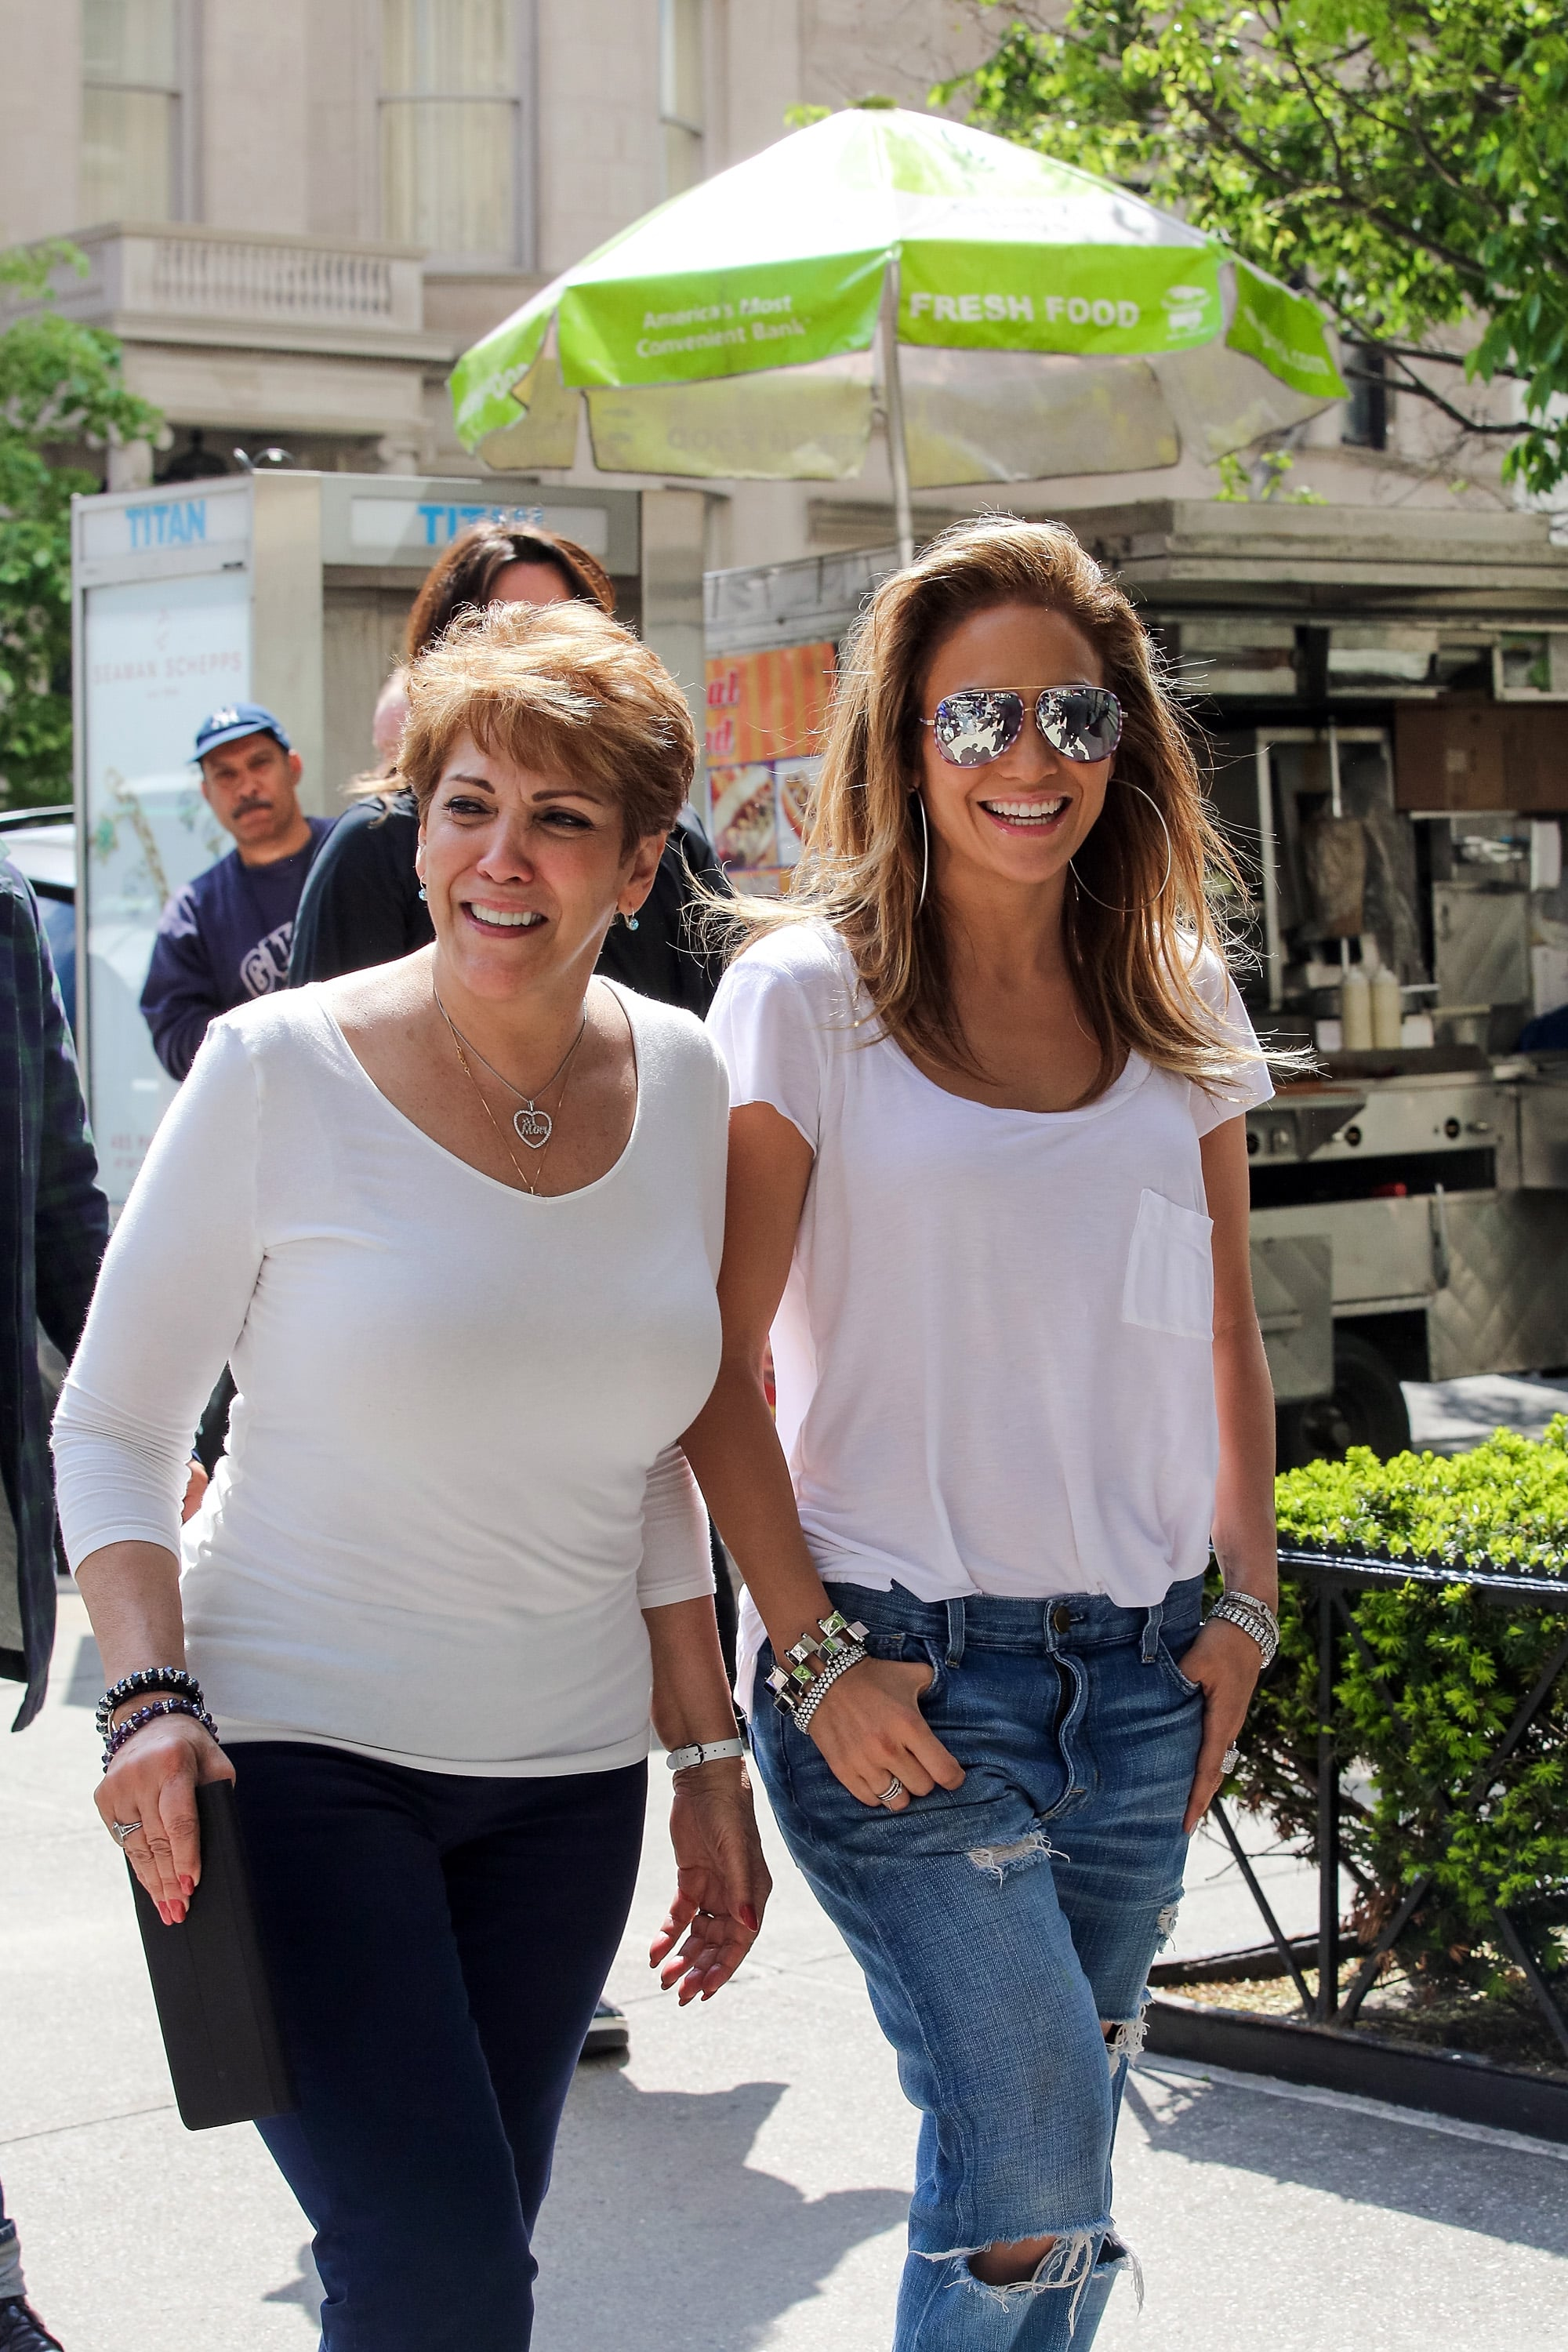 NEW YORK, NY - MAY 12:  Jennifer Lopez is seen taking a stroll on Madison Avenue with her mom Guadalupe Rodriguez on May 12, 2014 in New York City.  (Photo by Alessio Botticelli/GC Images)